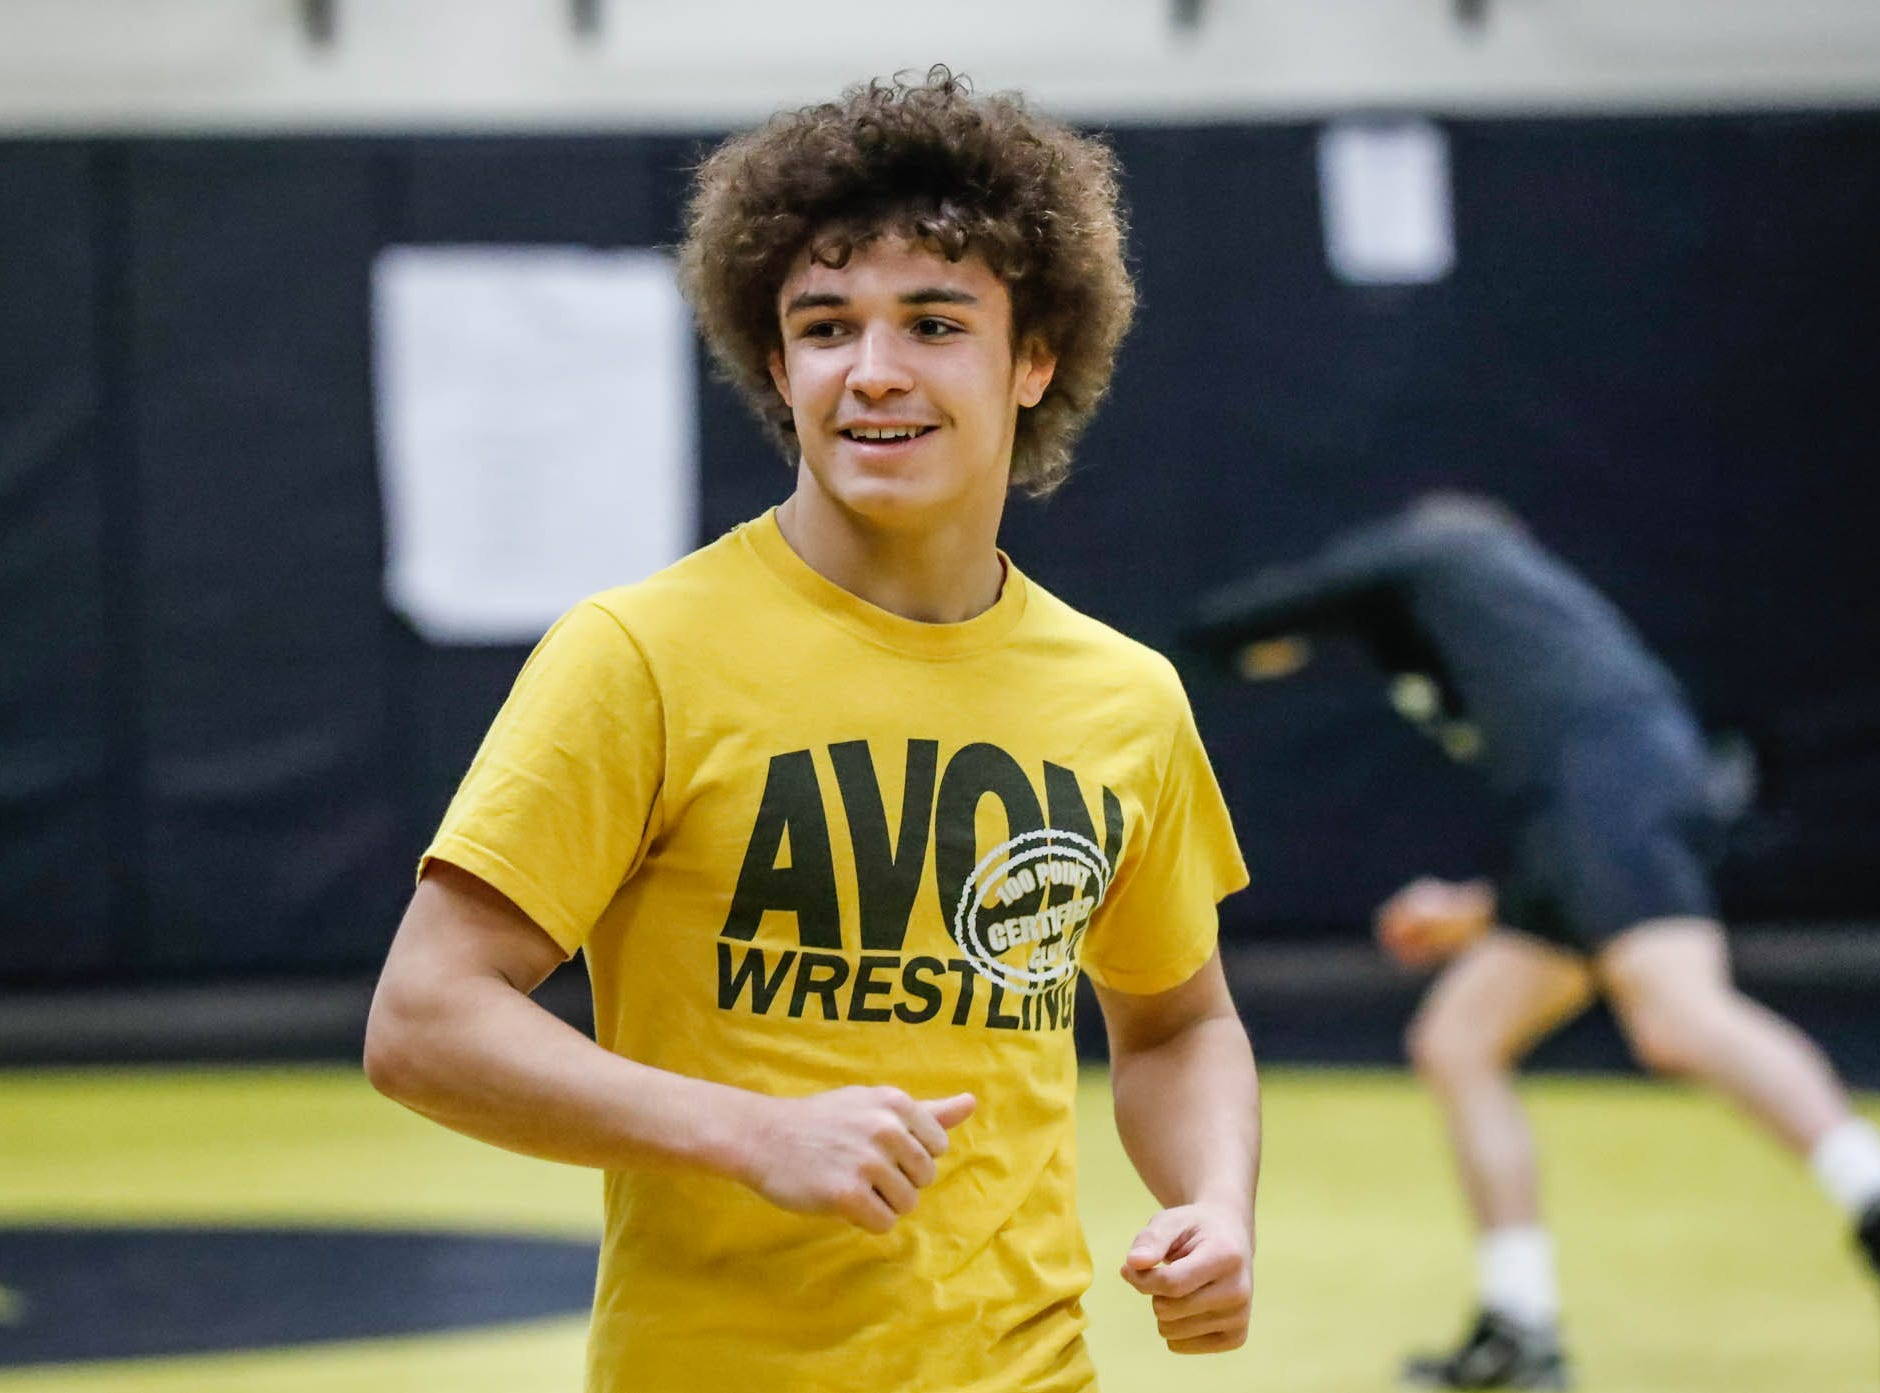 Avon wrestler Asa Garcia, center, runs warm up drills with his teammates during a team practice in the wrestling room at Avon High School, on Monday, Jan. 11, 2019. Asa Garcia, an Avon H.S. senior and two-time state wrestling champ is chasing his third state title.